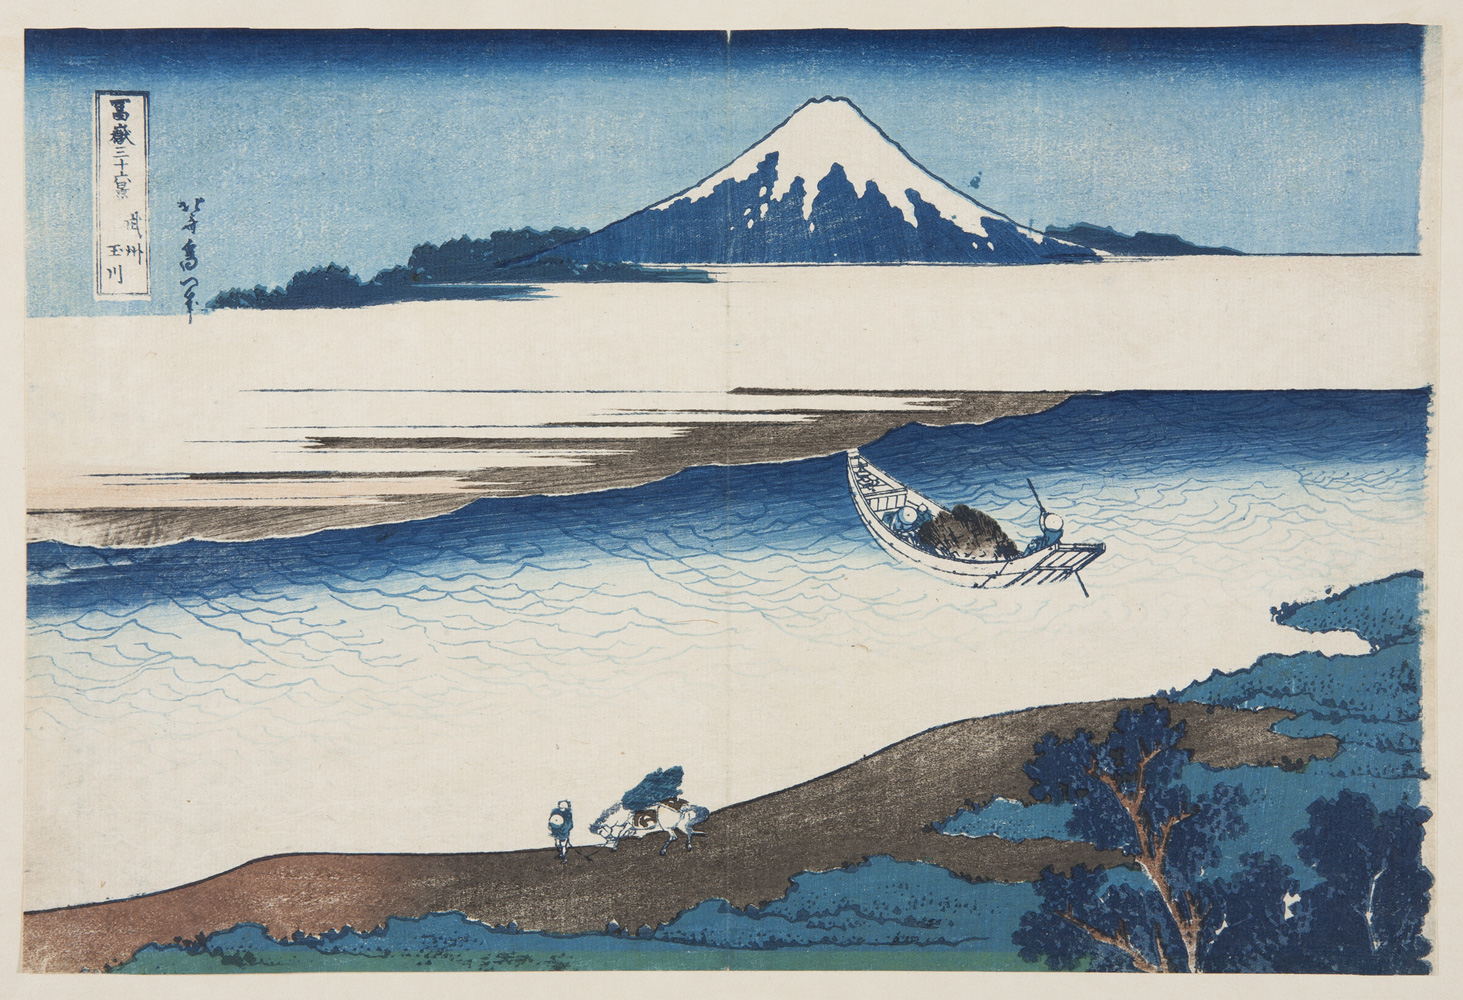 Japanese print of a landscape. A boat sails on the river. In the foreground a figure walks along the bank with a horse. Mount Fuji rises up in the background.